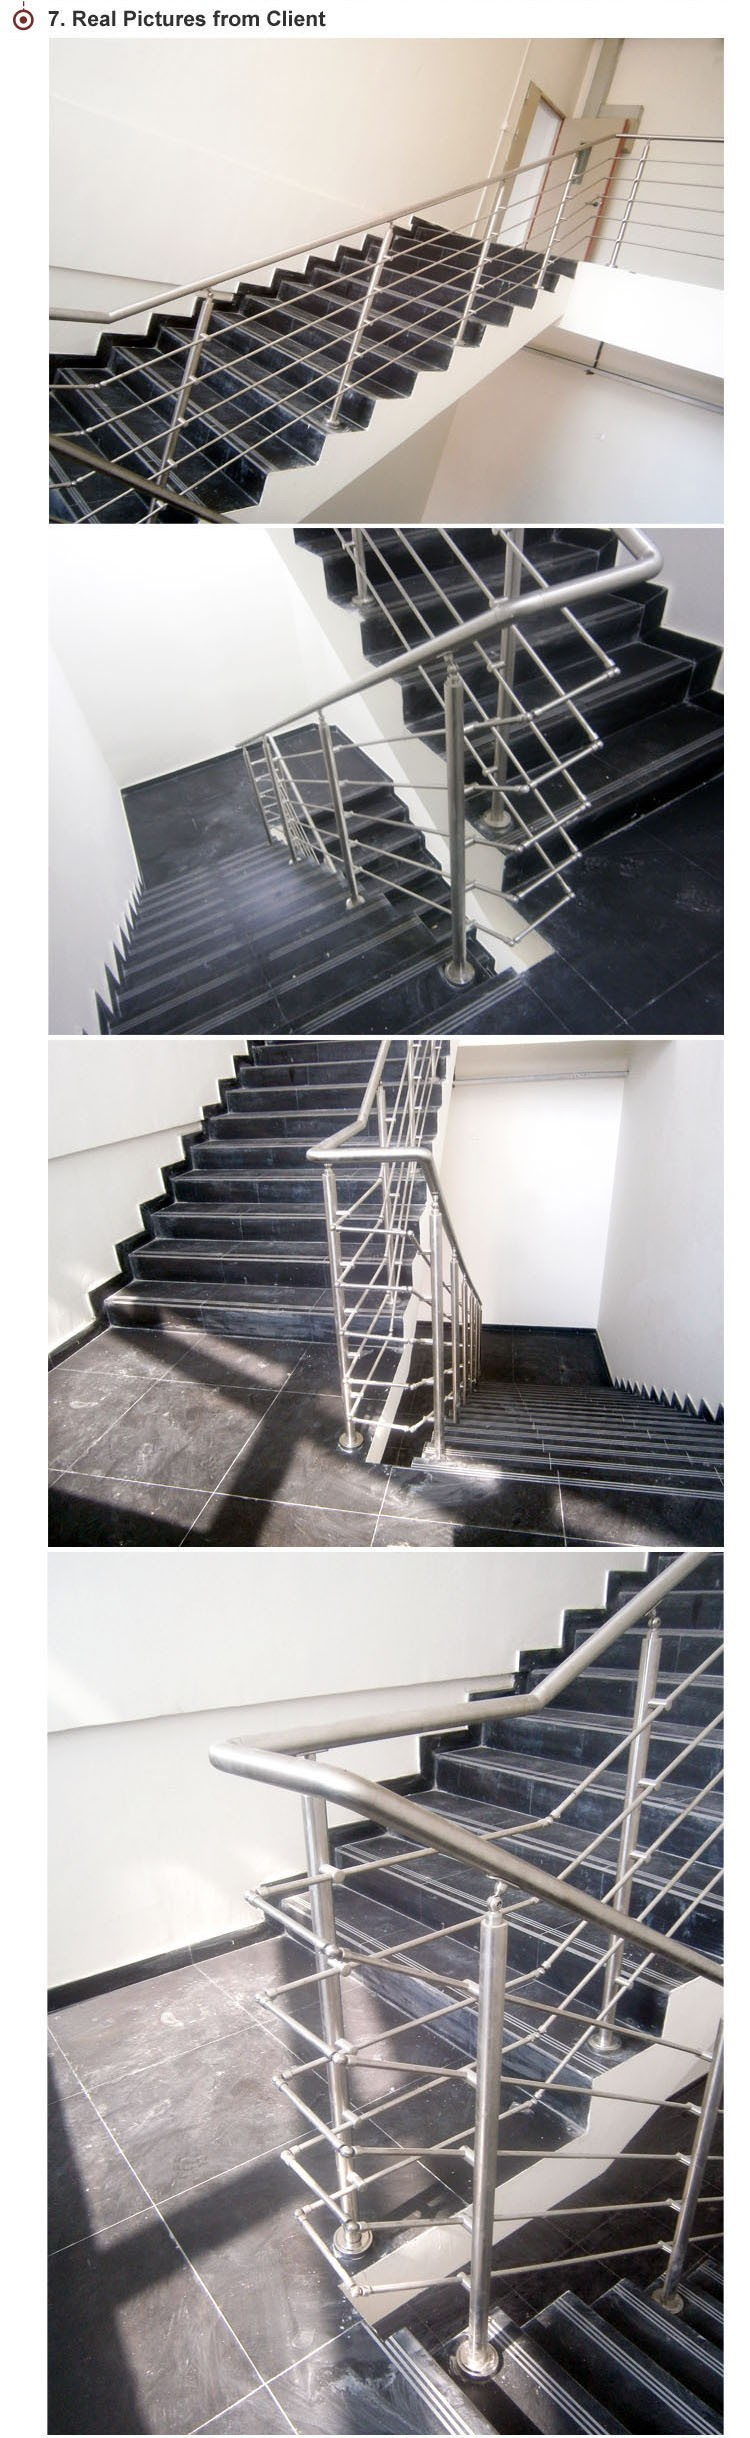 Steel grill design for stairs - Outdoor Stair Railing Balcony Steel Grill Designs